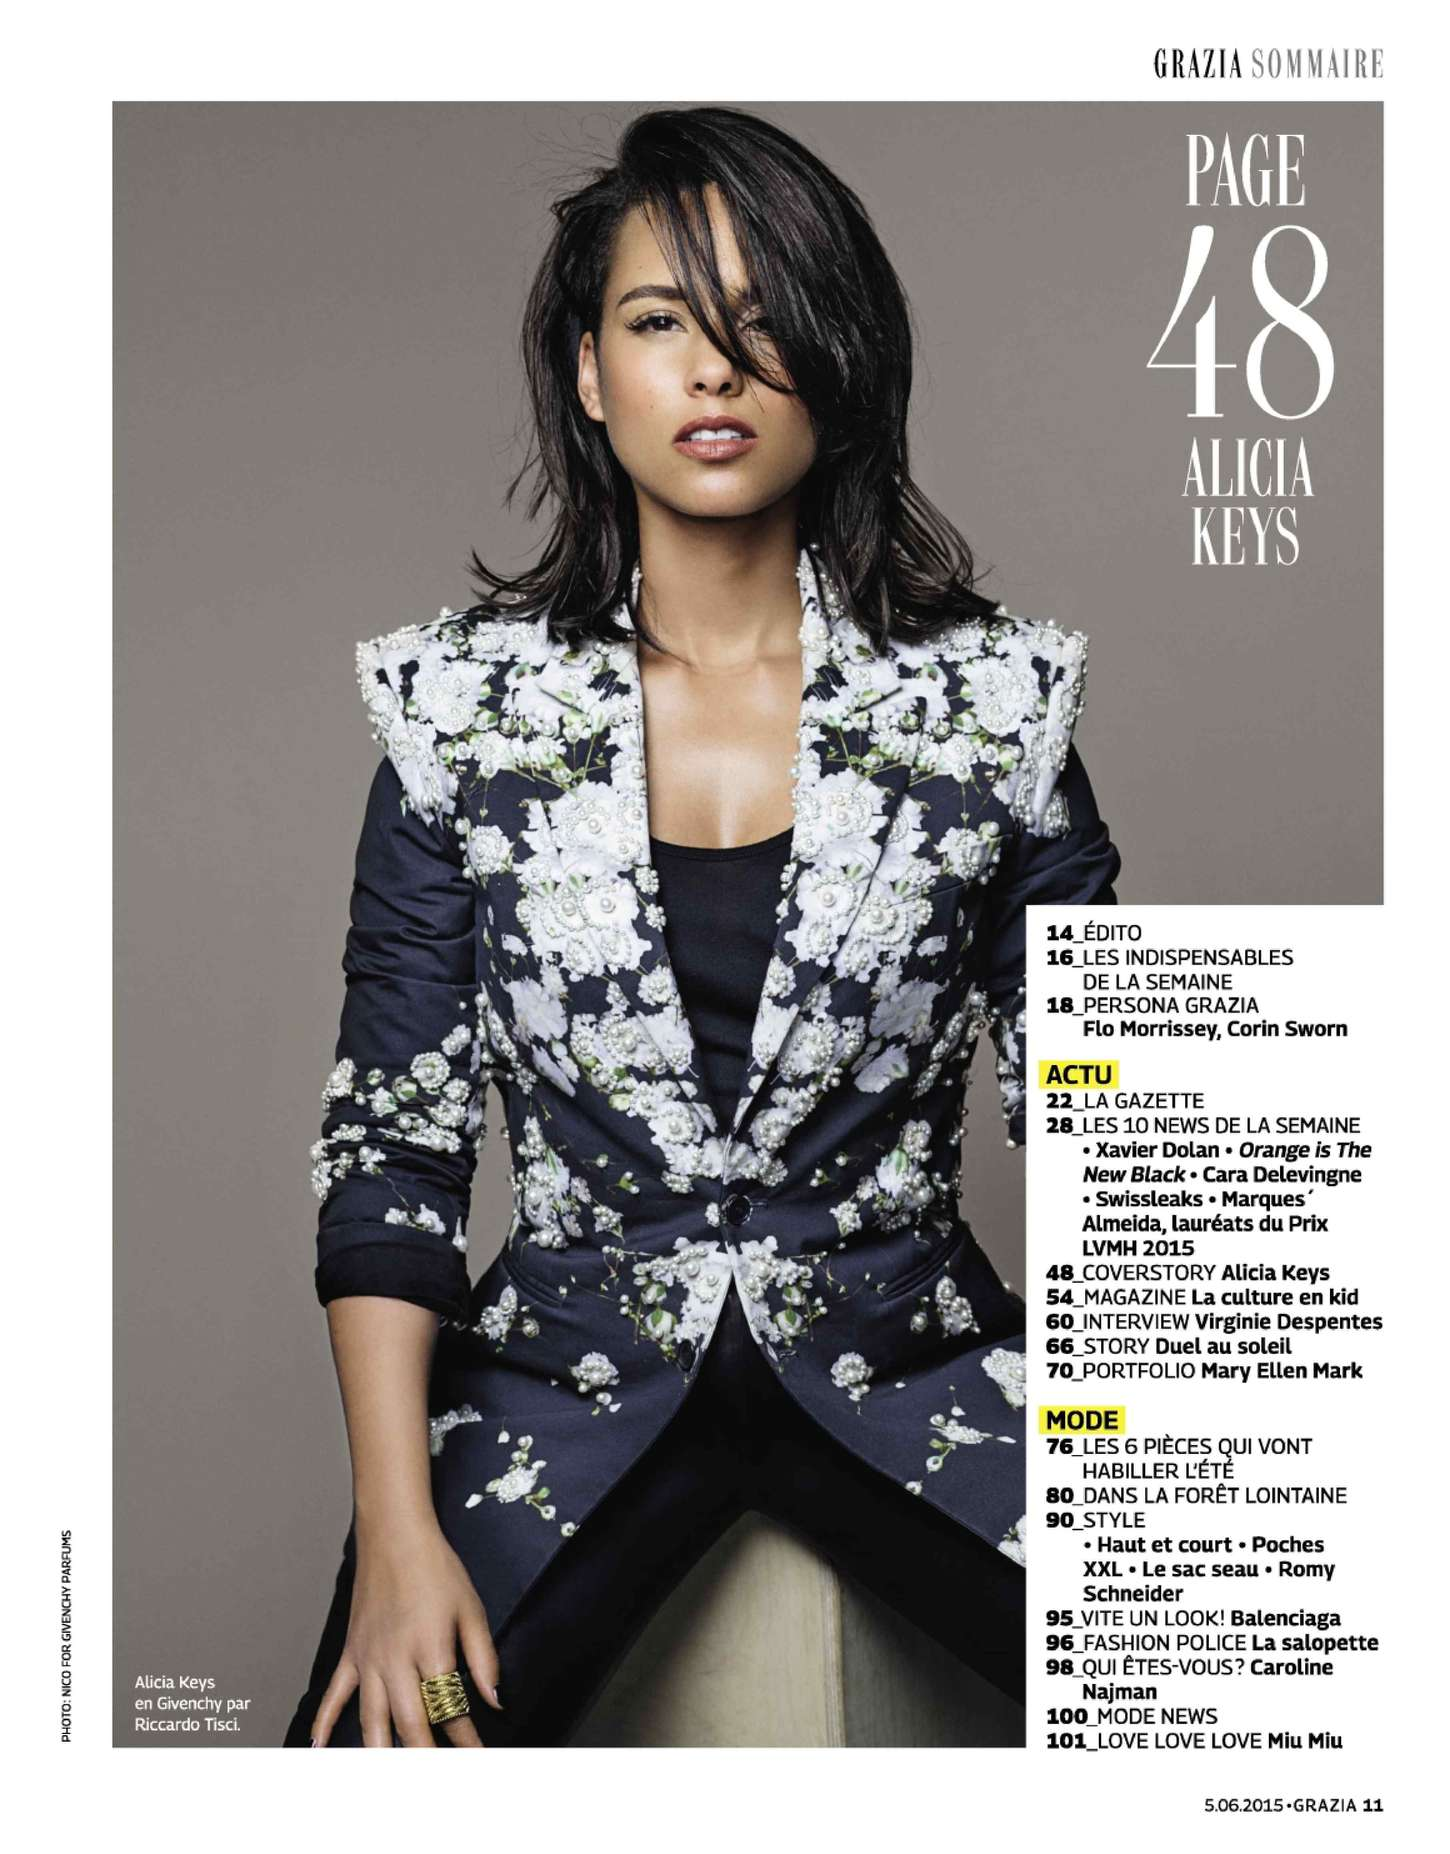 Alicia Keys Grazia Magazine